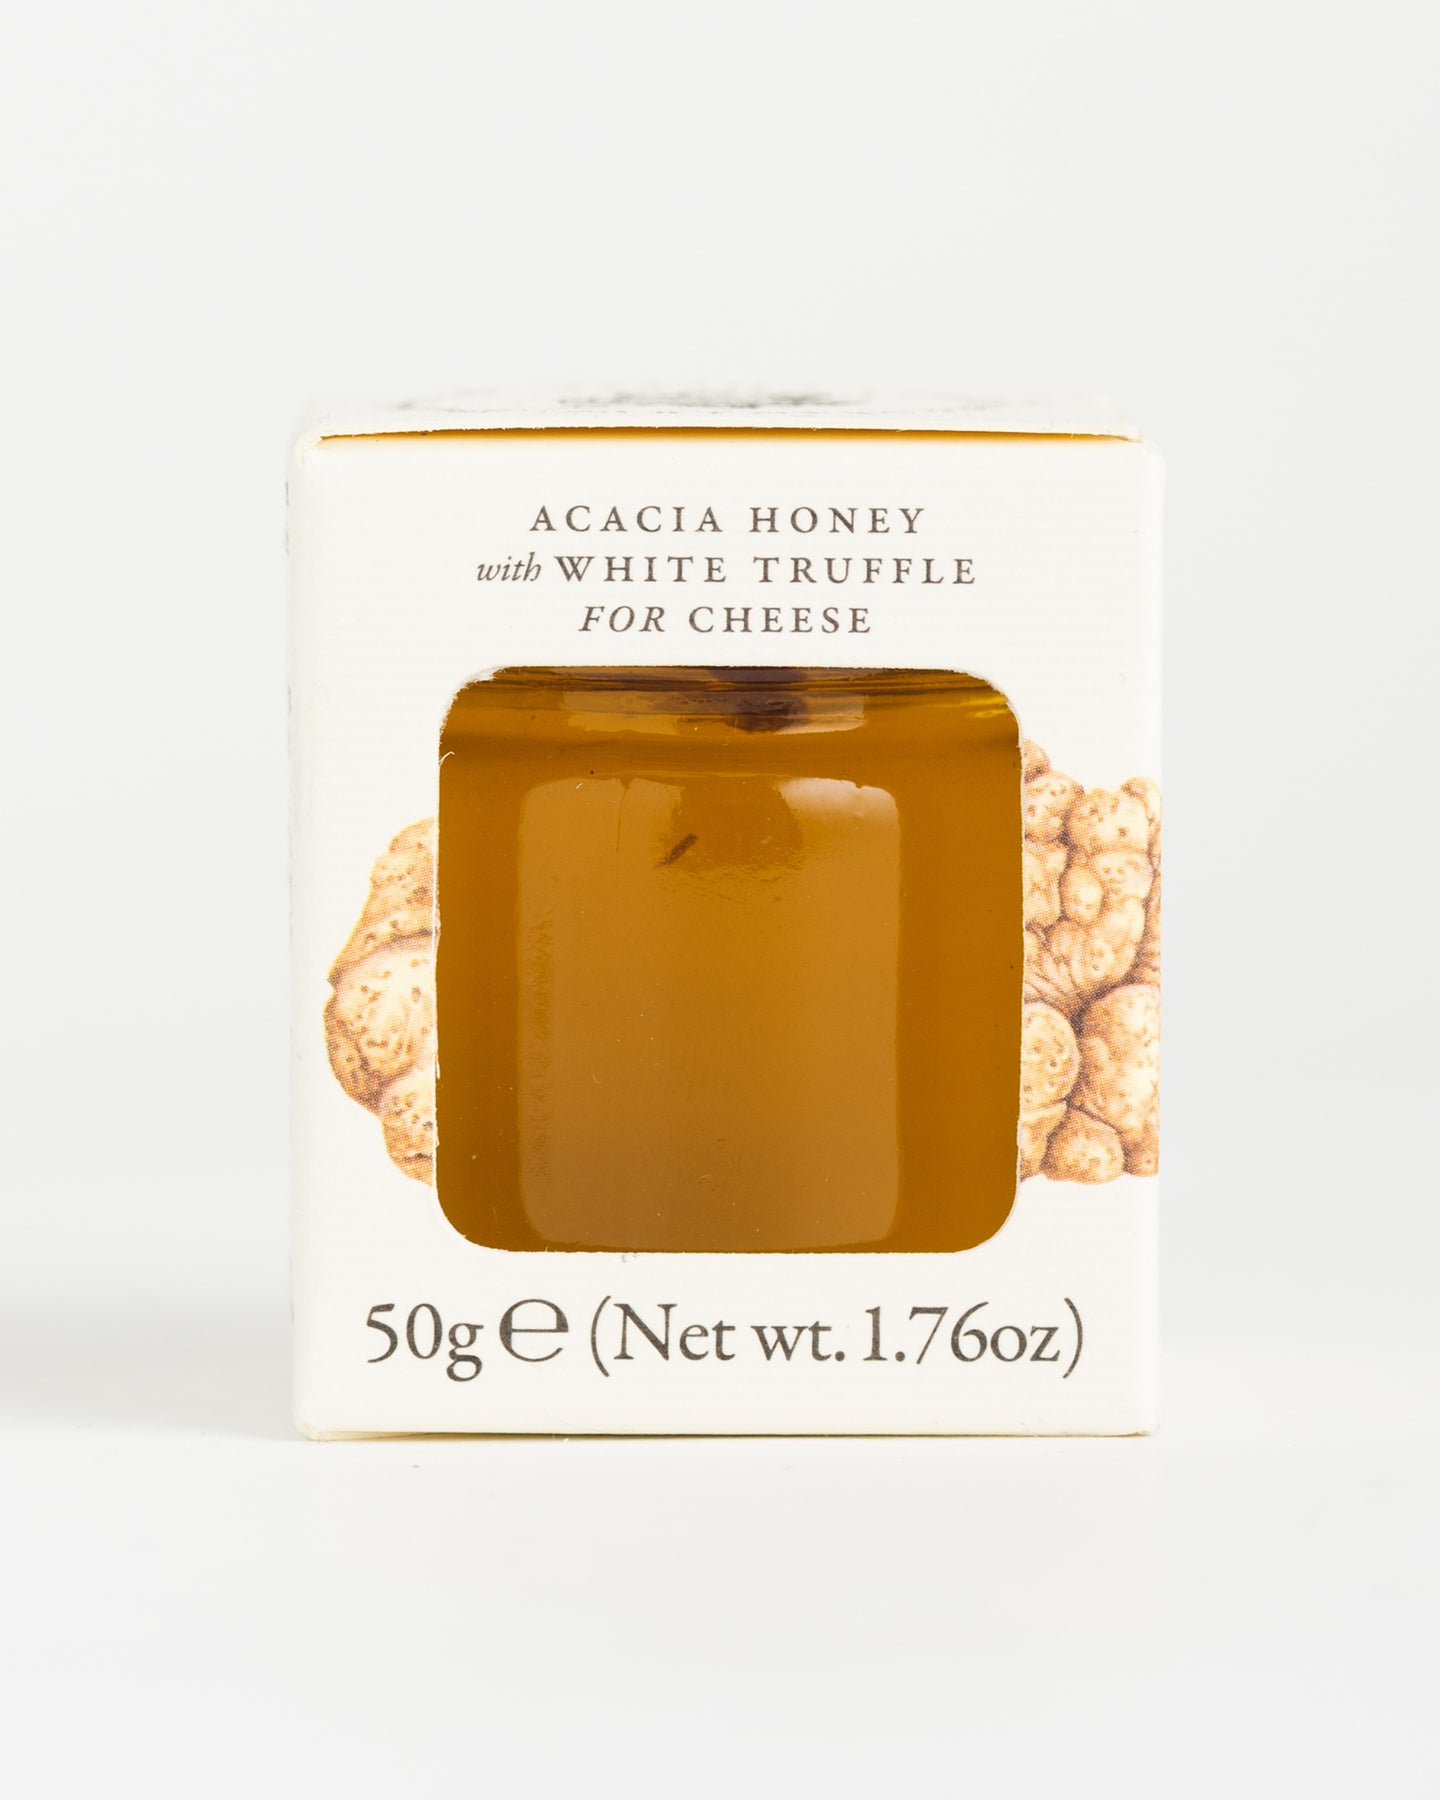 The Fine Cheese co. - Acacia Honey wiith White Truffle for Cheese